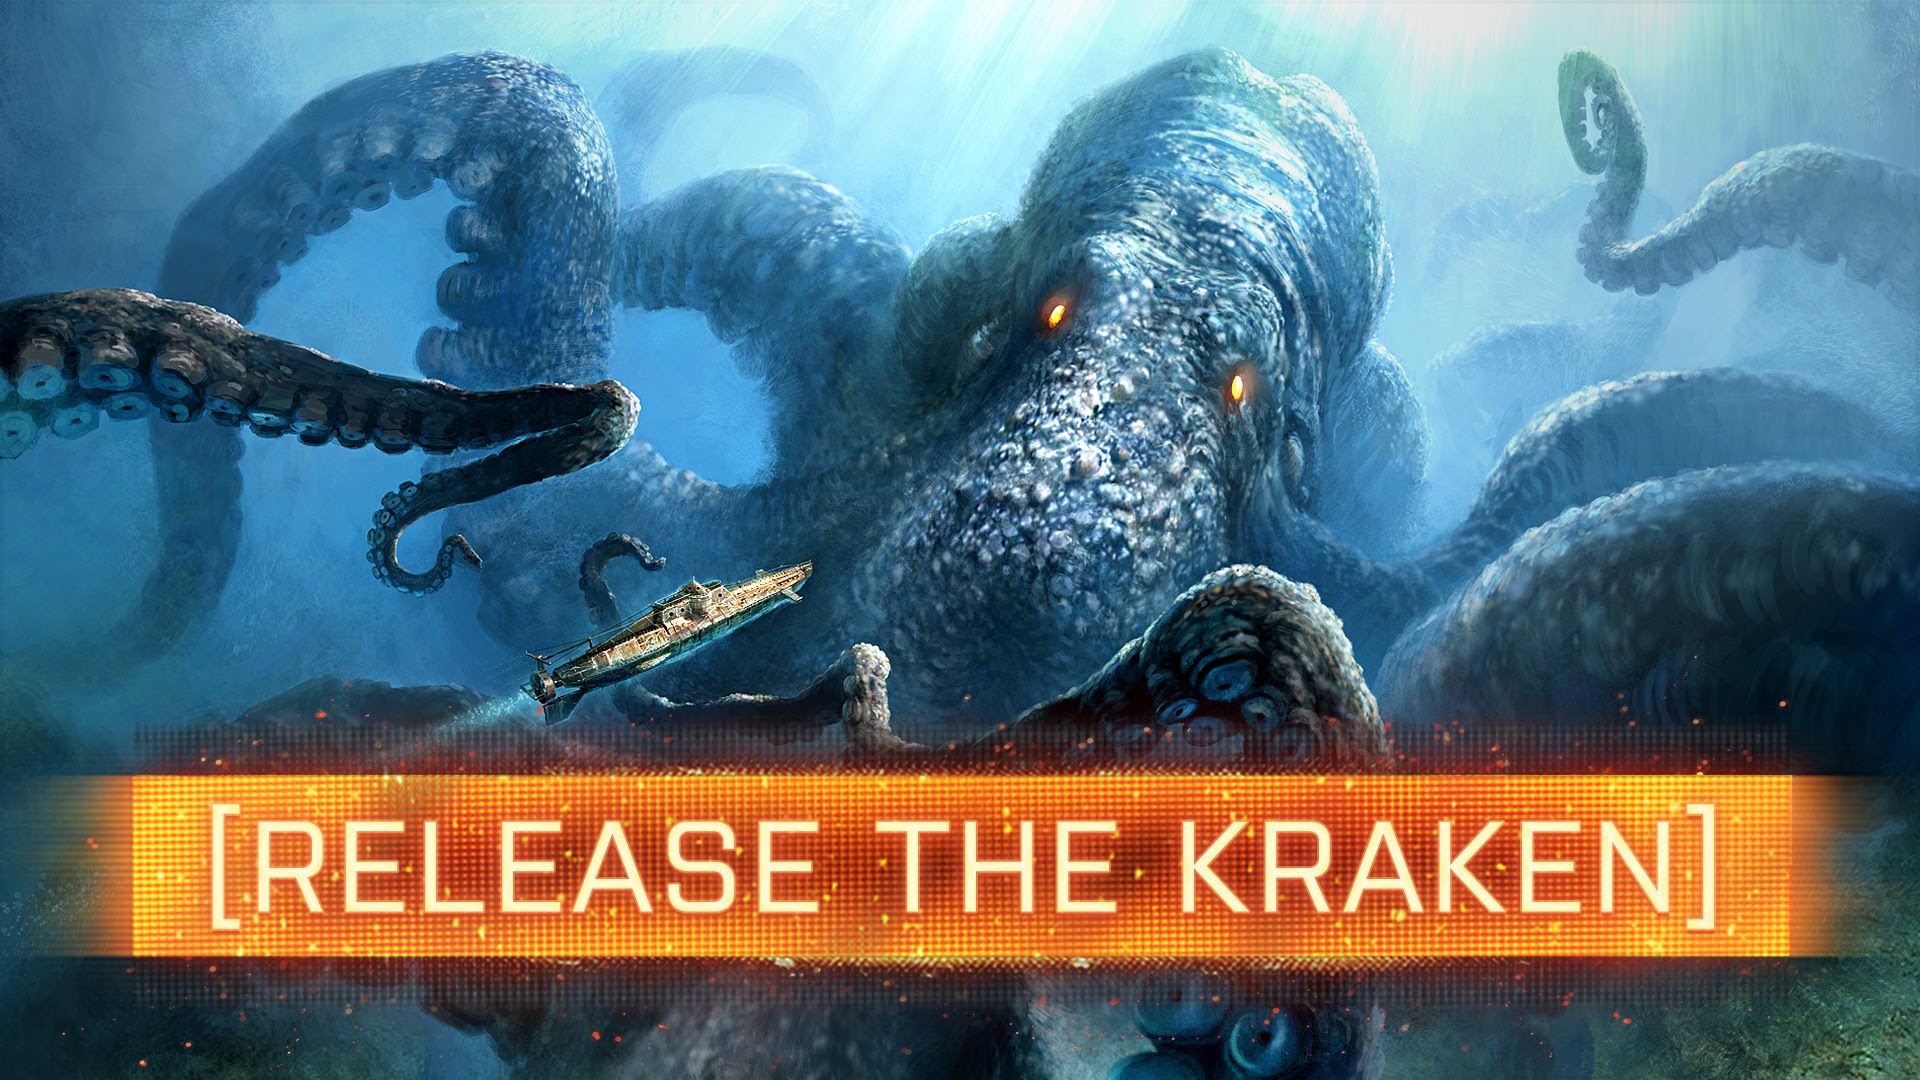 Awaiting the Kraken ?u=https%3A%2F%2Fassets.vg247.com%2Fcurrent%2F2015%2F01%2Fmaxresdefault